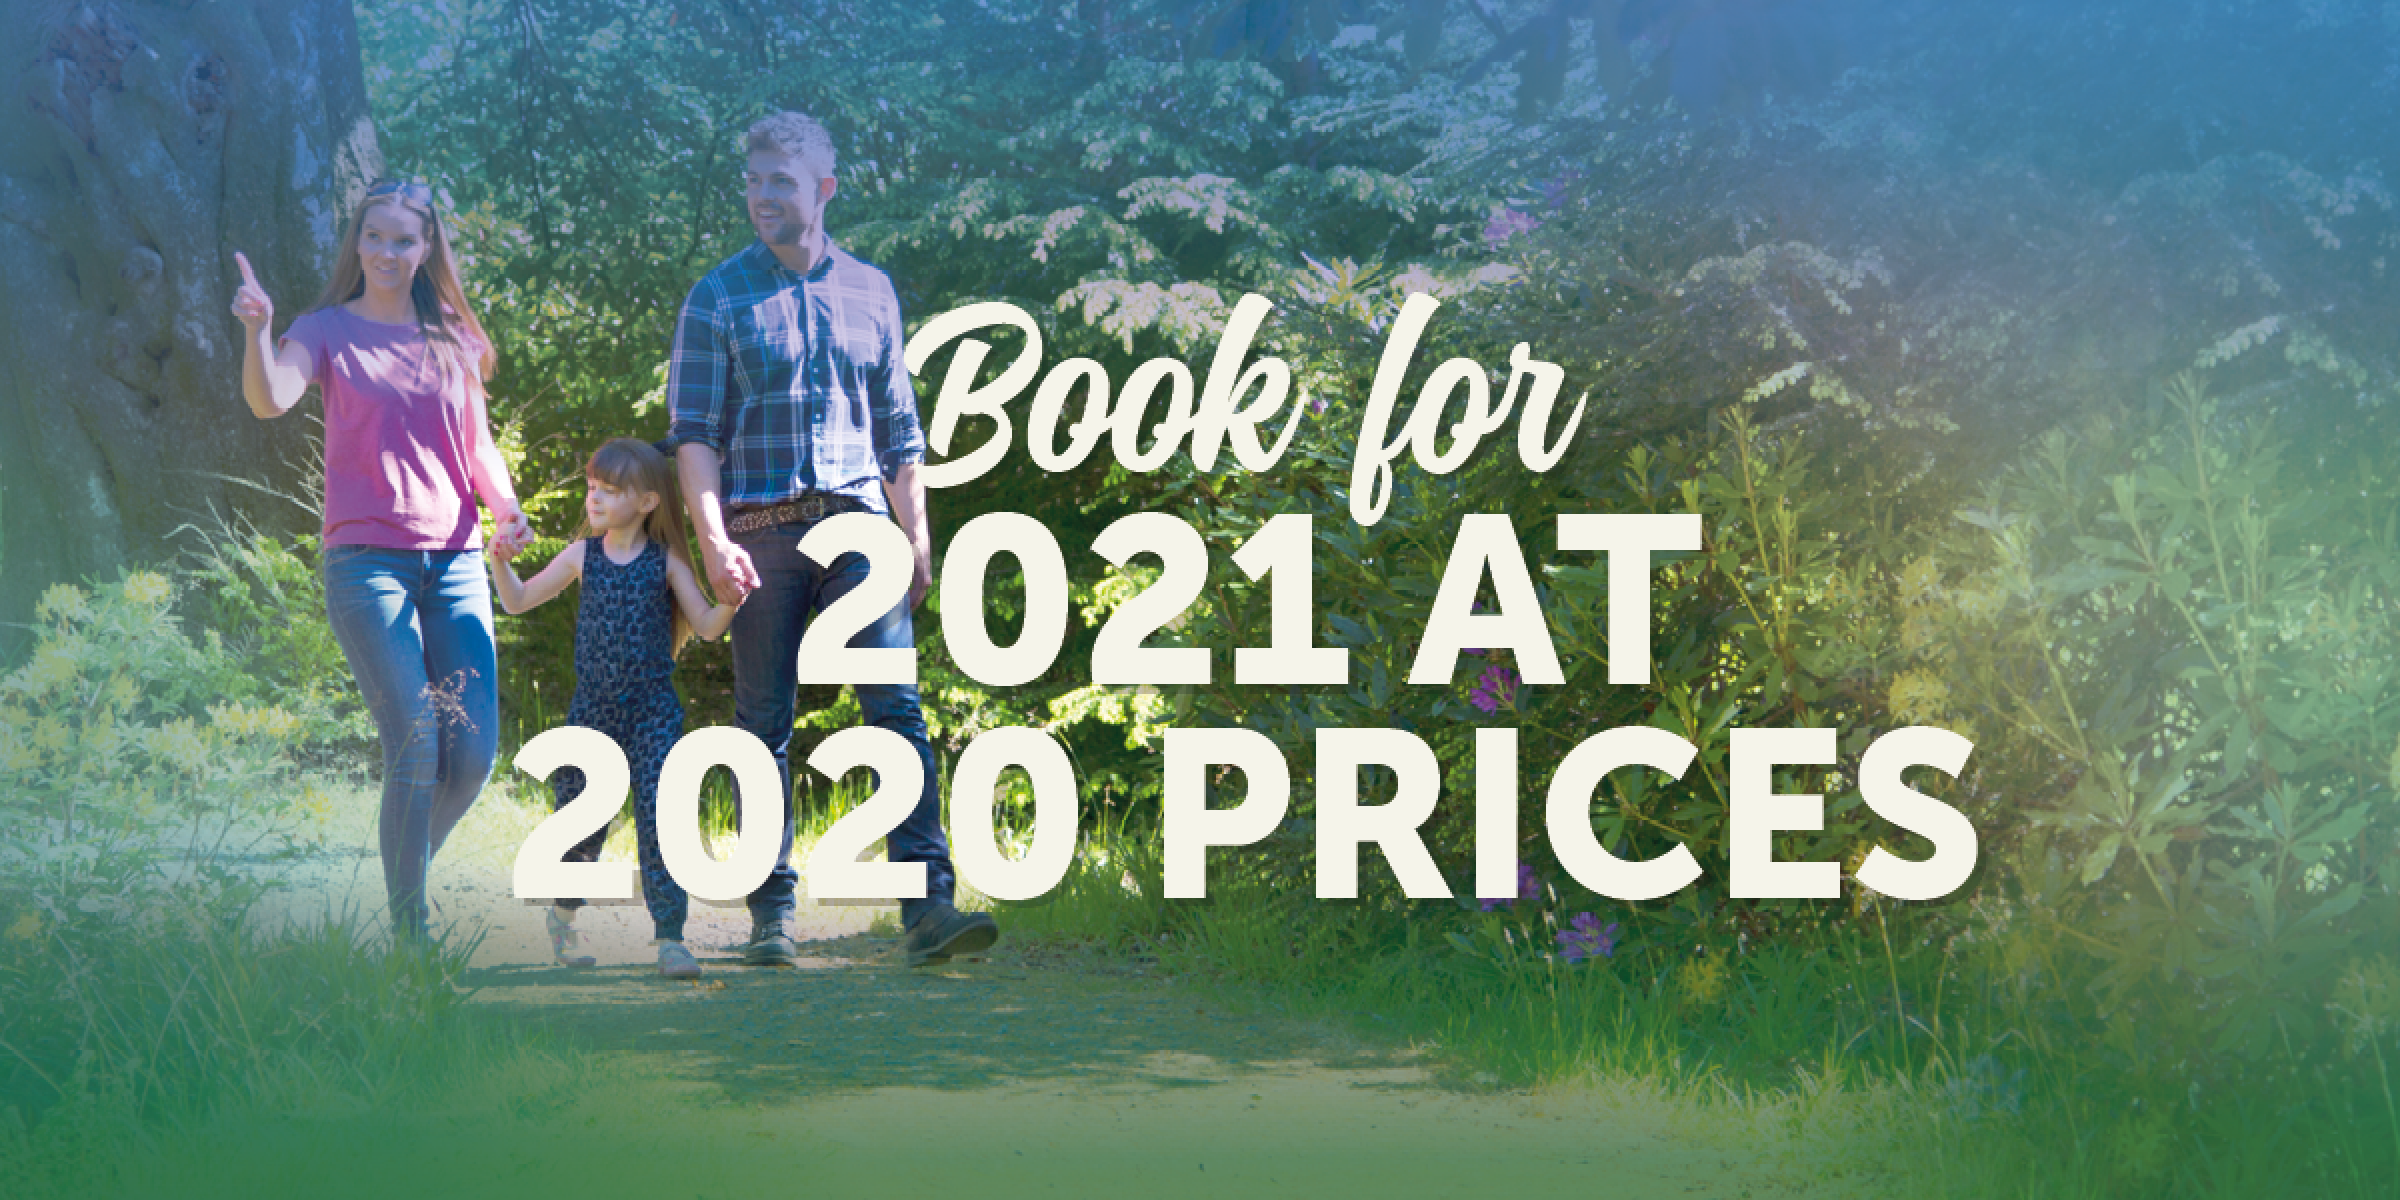 Book Now for 2021